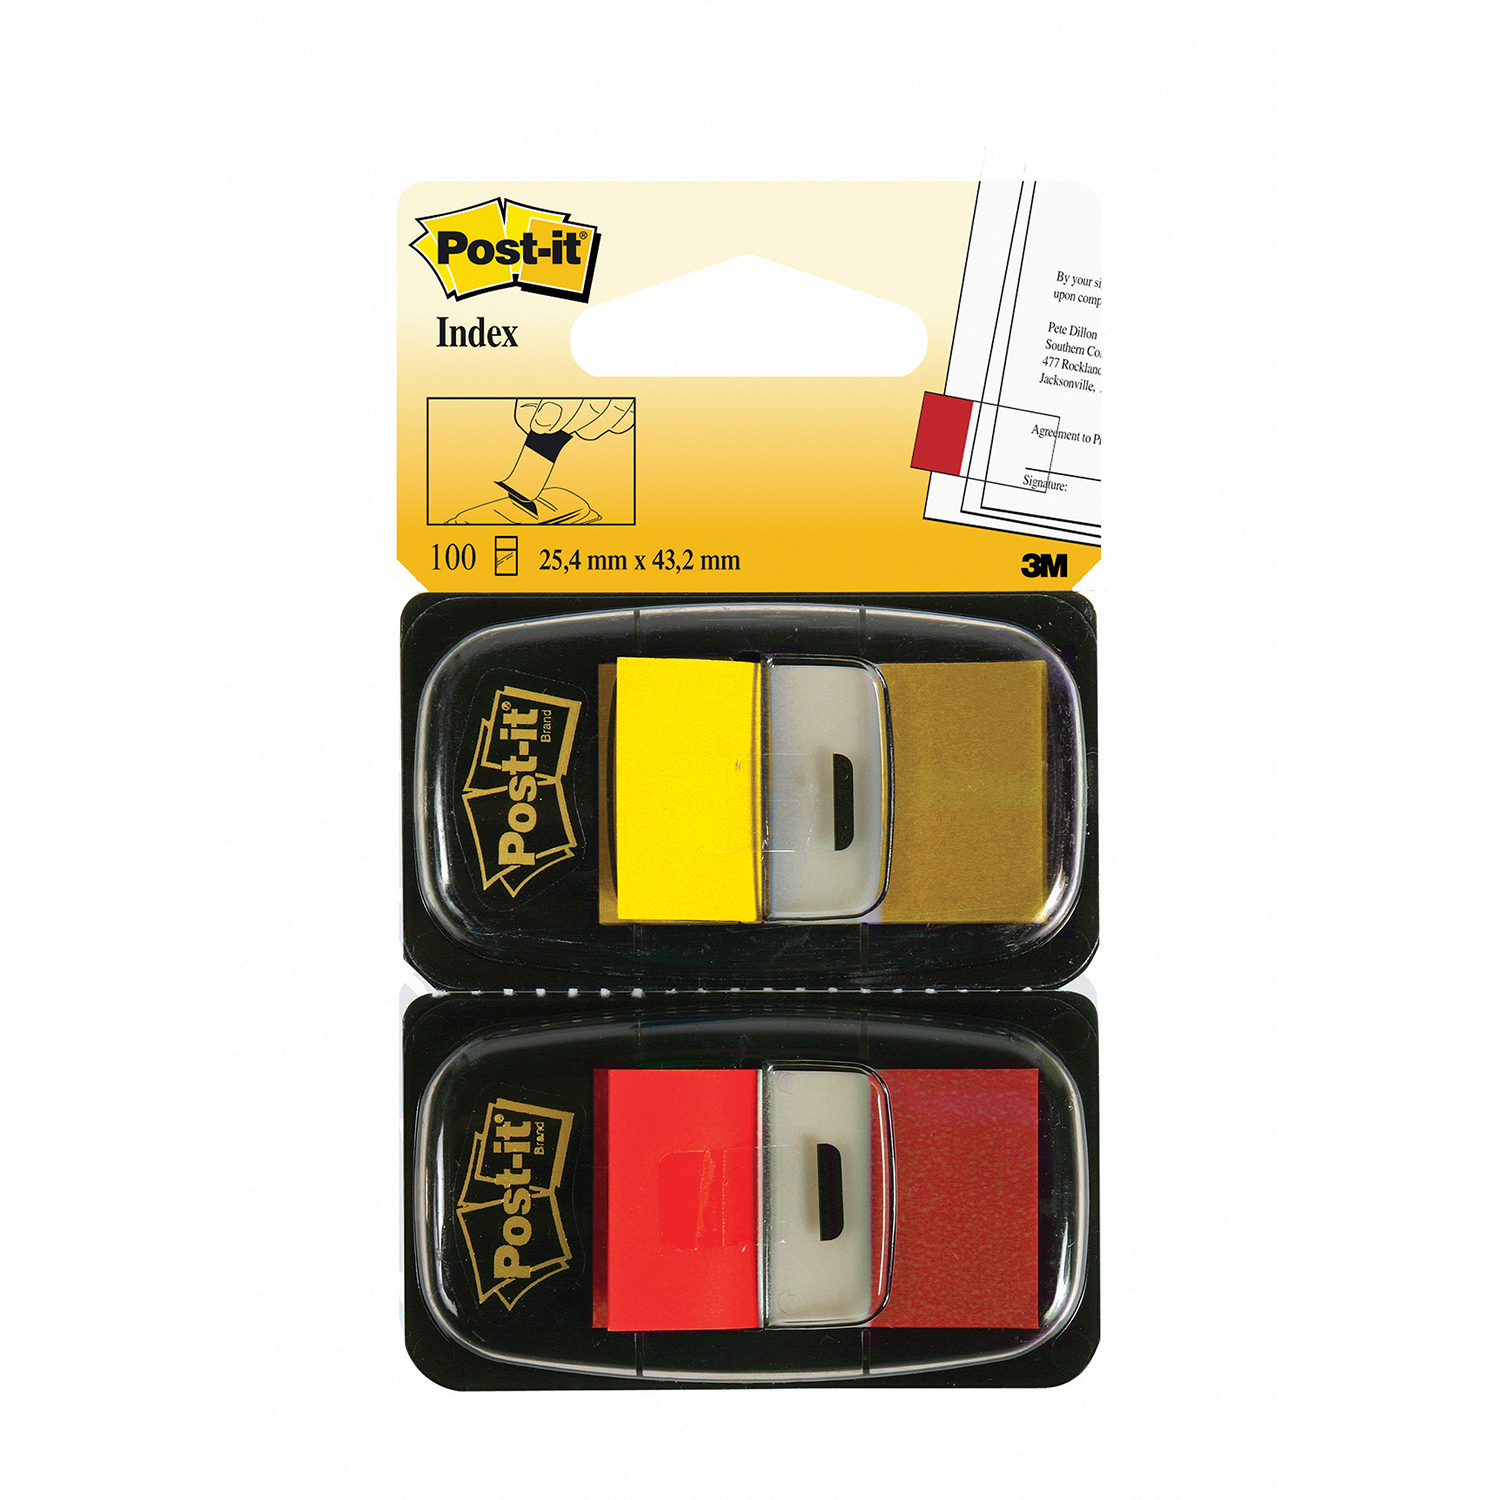 Tab indexes Post-It Index Markers 25x43.2mm Dual Pack Red/Yellow Ref 680-RY2 100 Markers